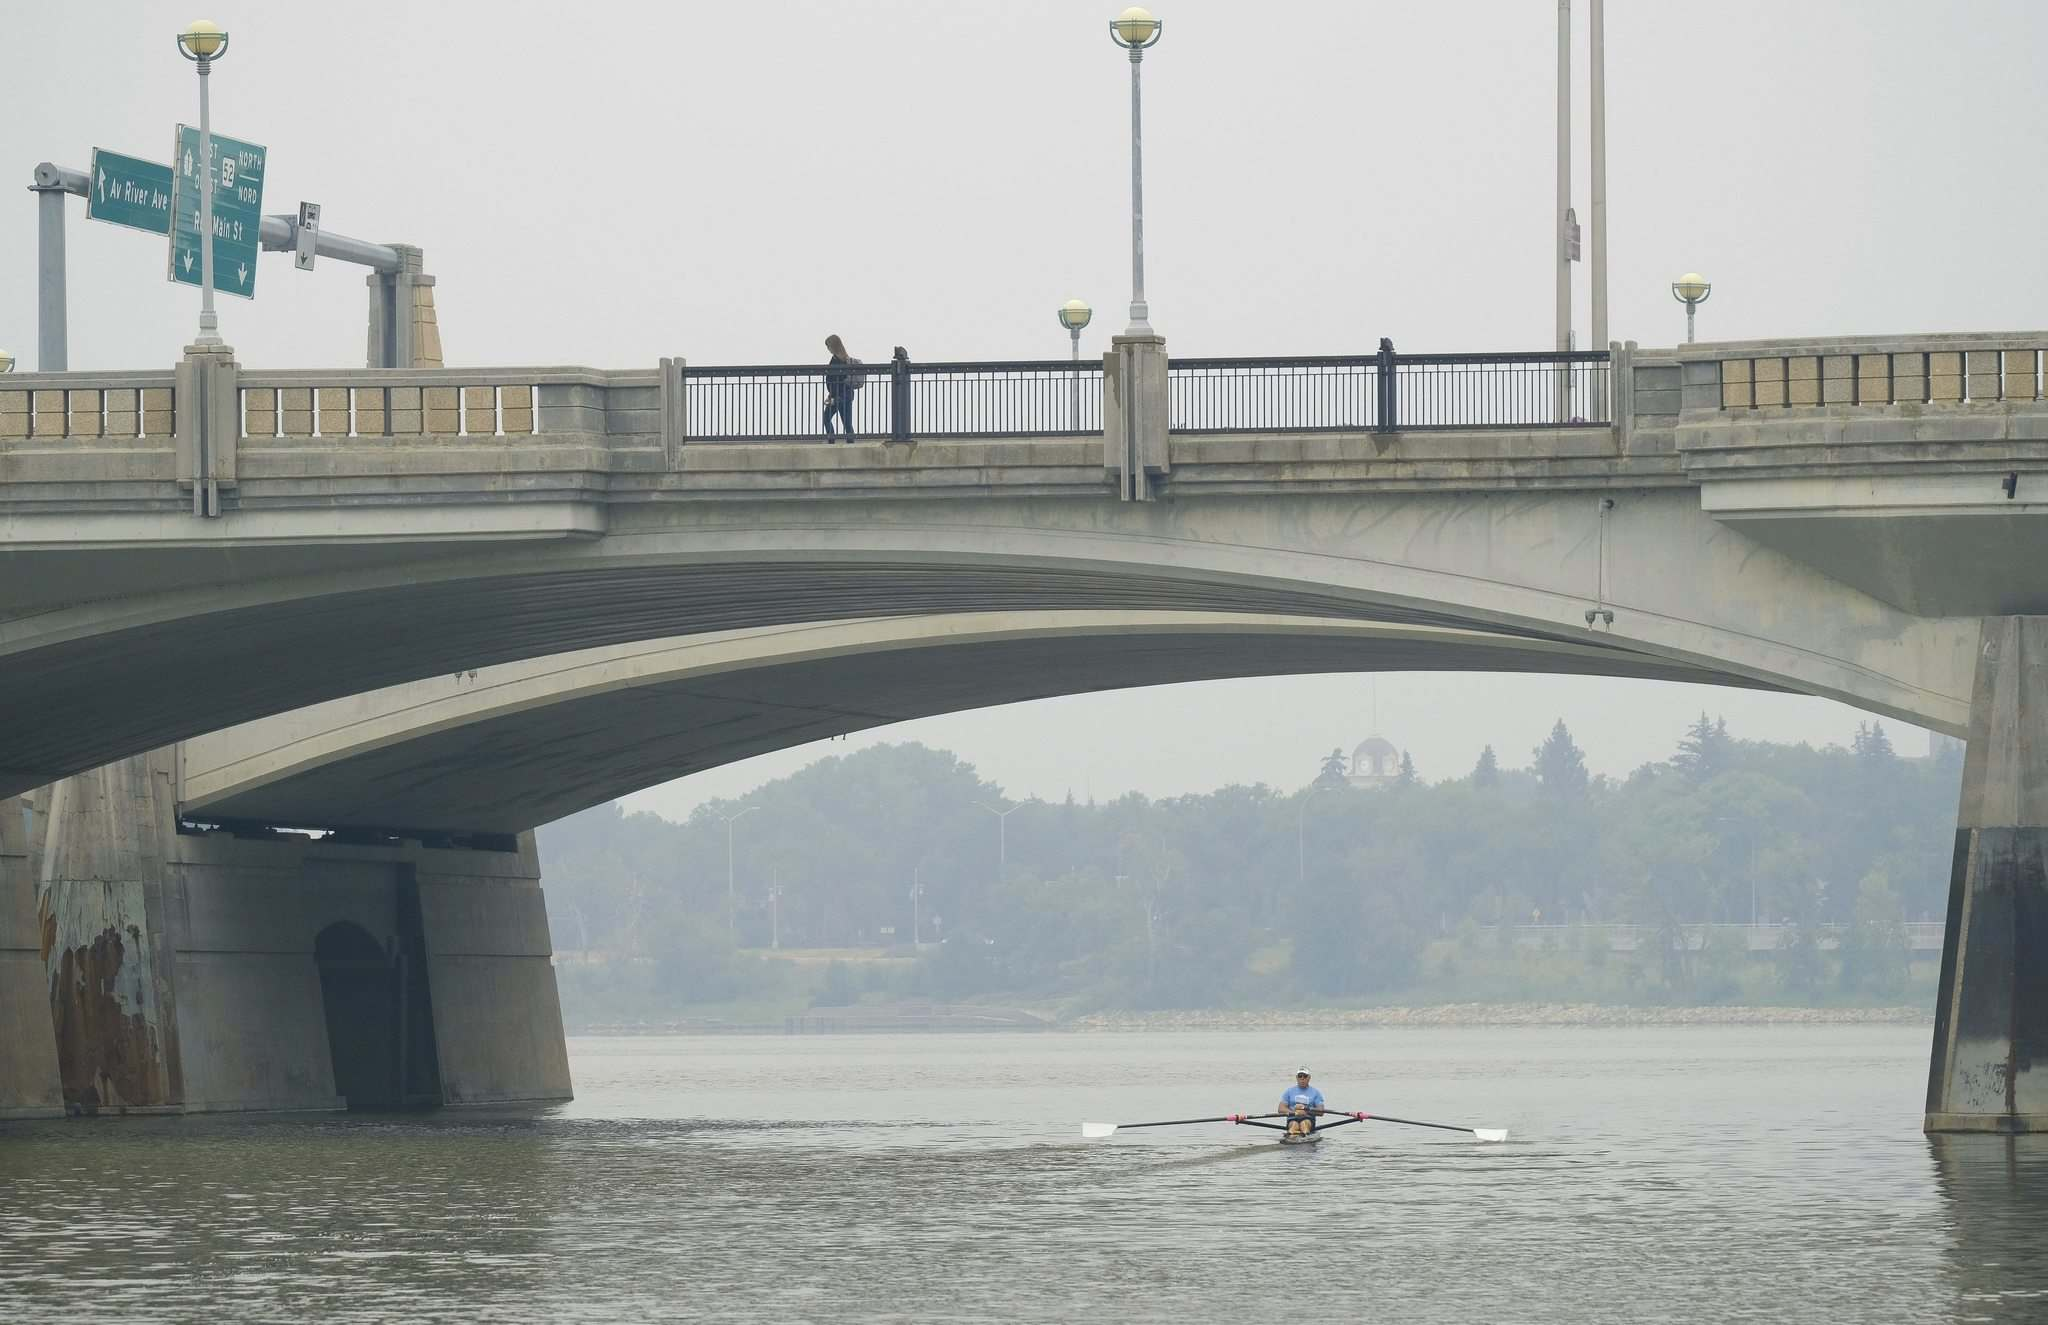 MIKE DEAL / WINNIPEG FREE PRESS</p><p>A rower on the Red River Tuesday morning in a haze of smoke from forest fires in northwestern Ontario and east-central Manitoba. City officials said people who exercise outdoors, as well as young children, seniors, pregnant women and people with respiratory or cardiovascular conditions, are at most risk of falling ill due to wildfire smoke.</p></p>